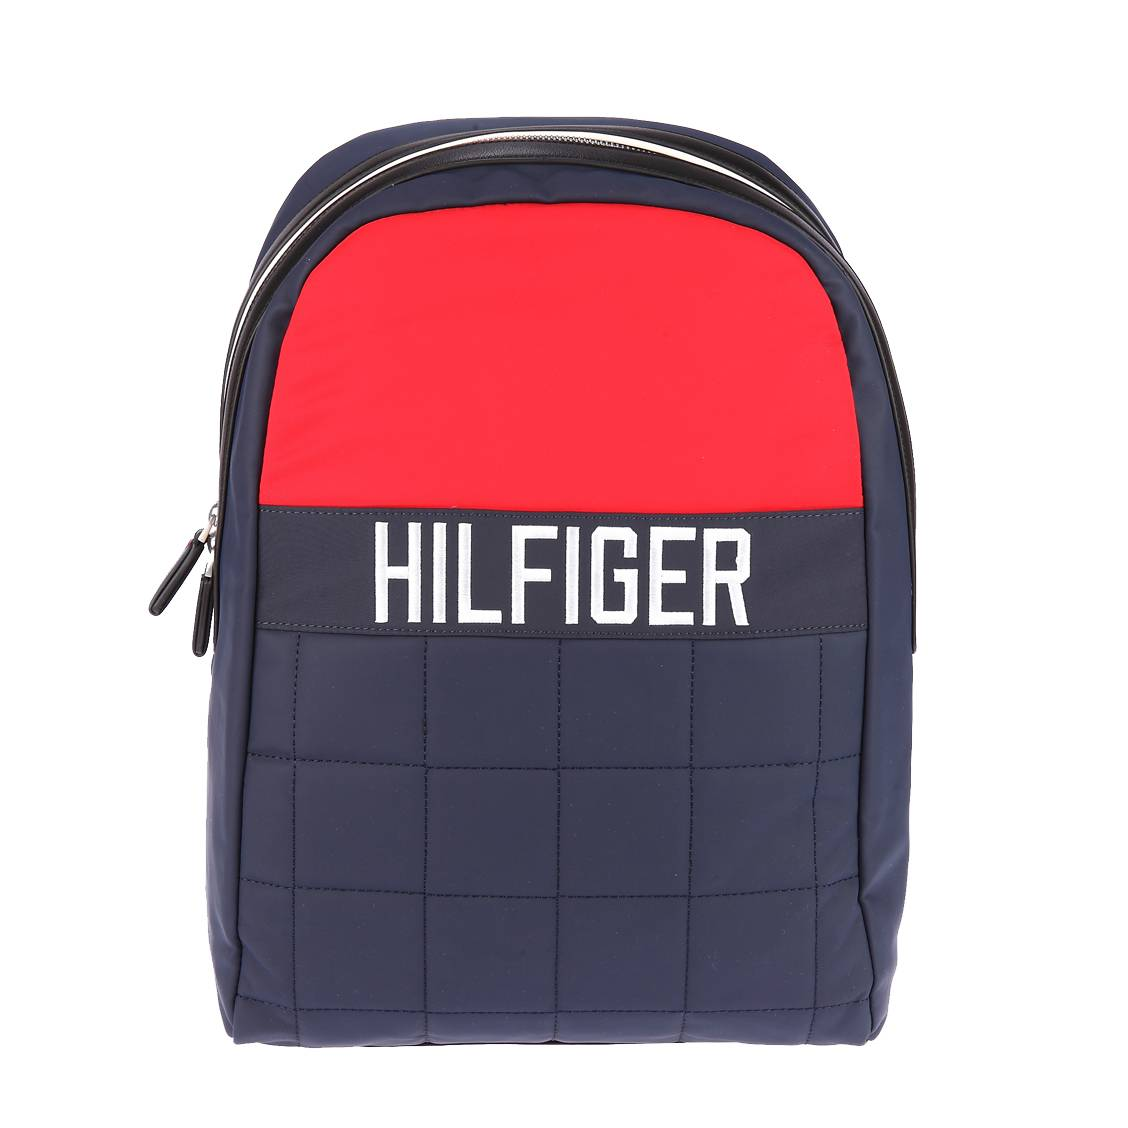 Sac à dos Tommy Hilfiger Backpack noir